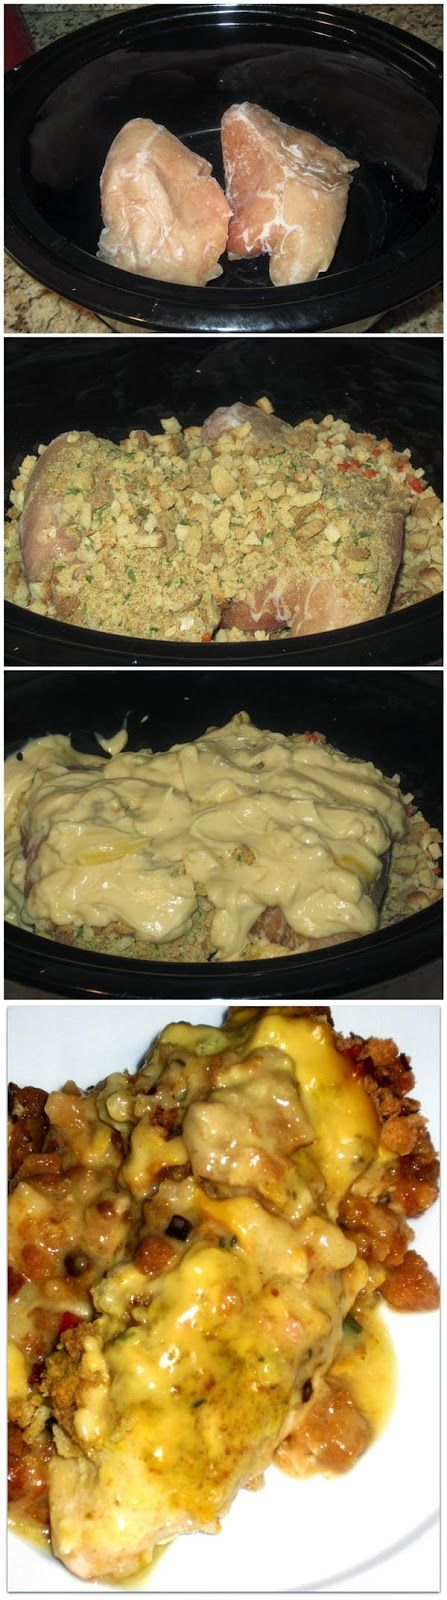 Crockpot Chicken and Stuffing is so easy to make with only 5 ingredients and a crockpot!